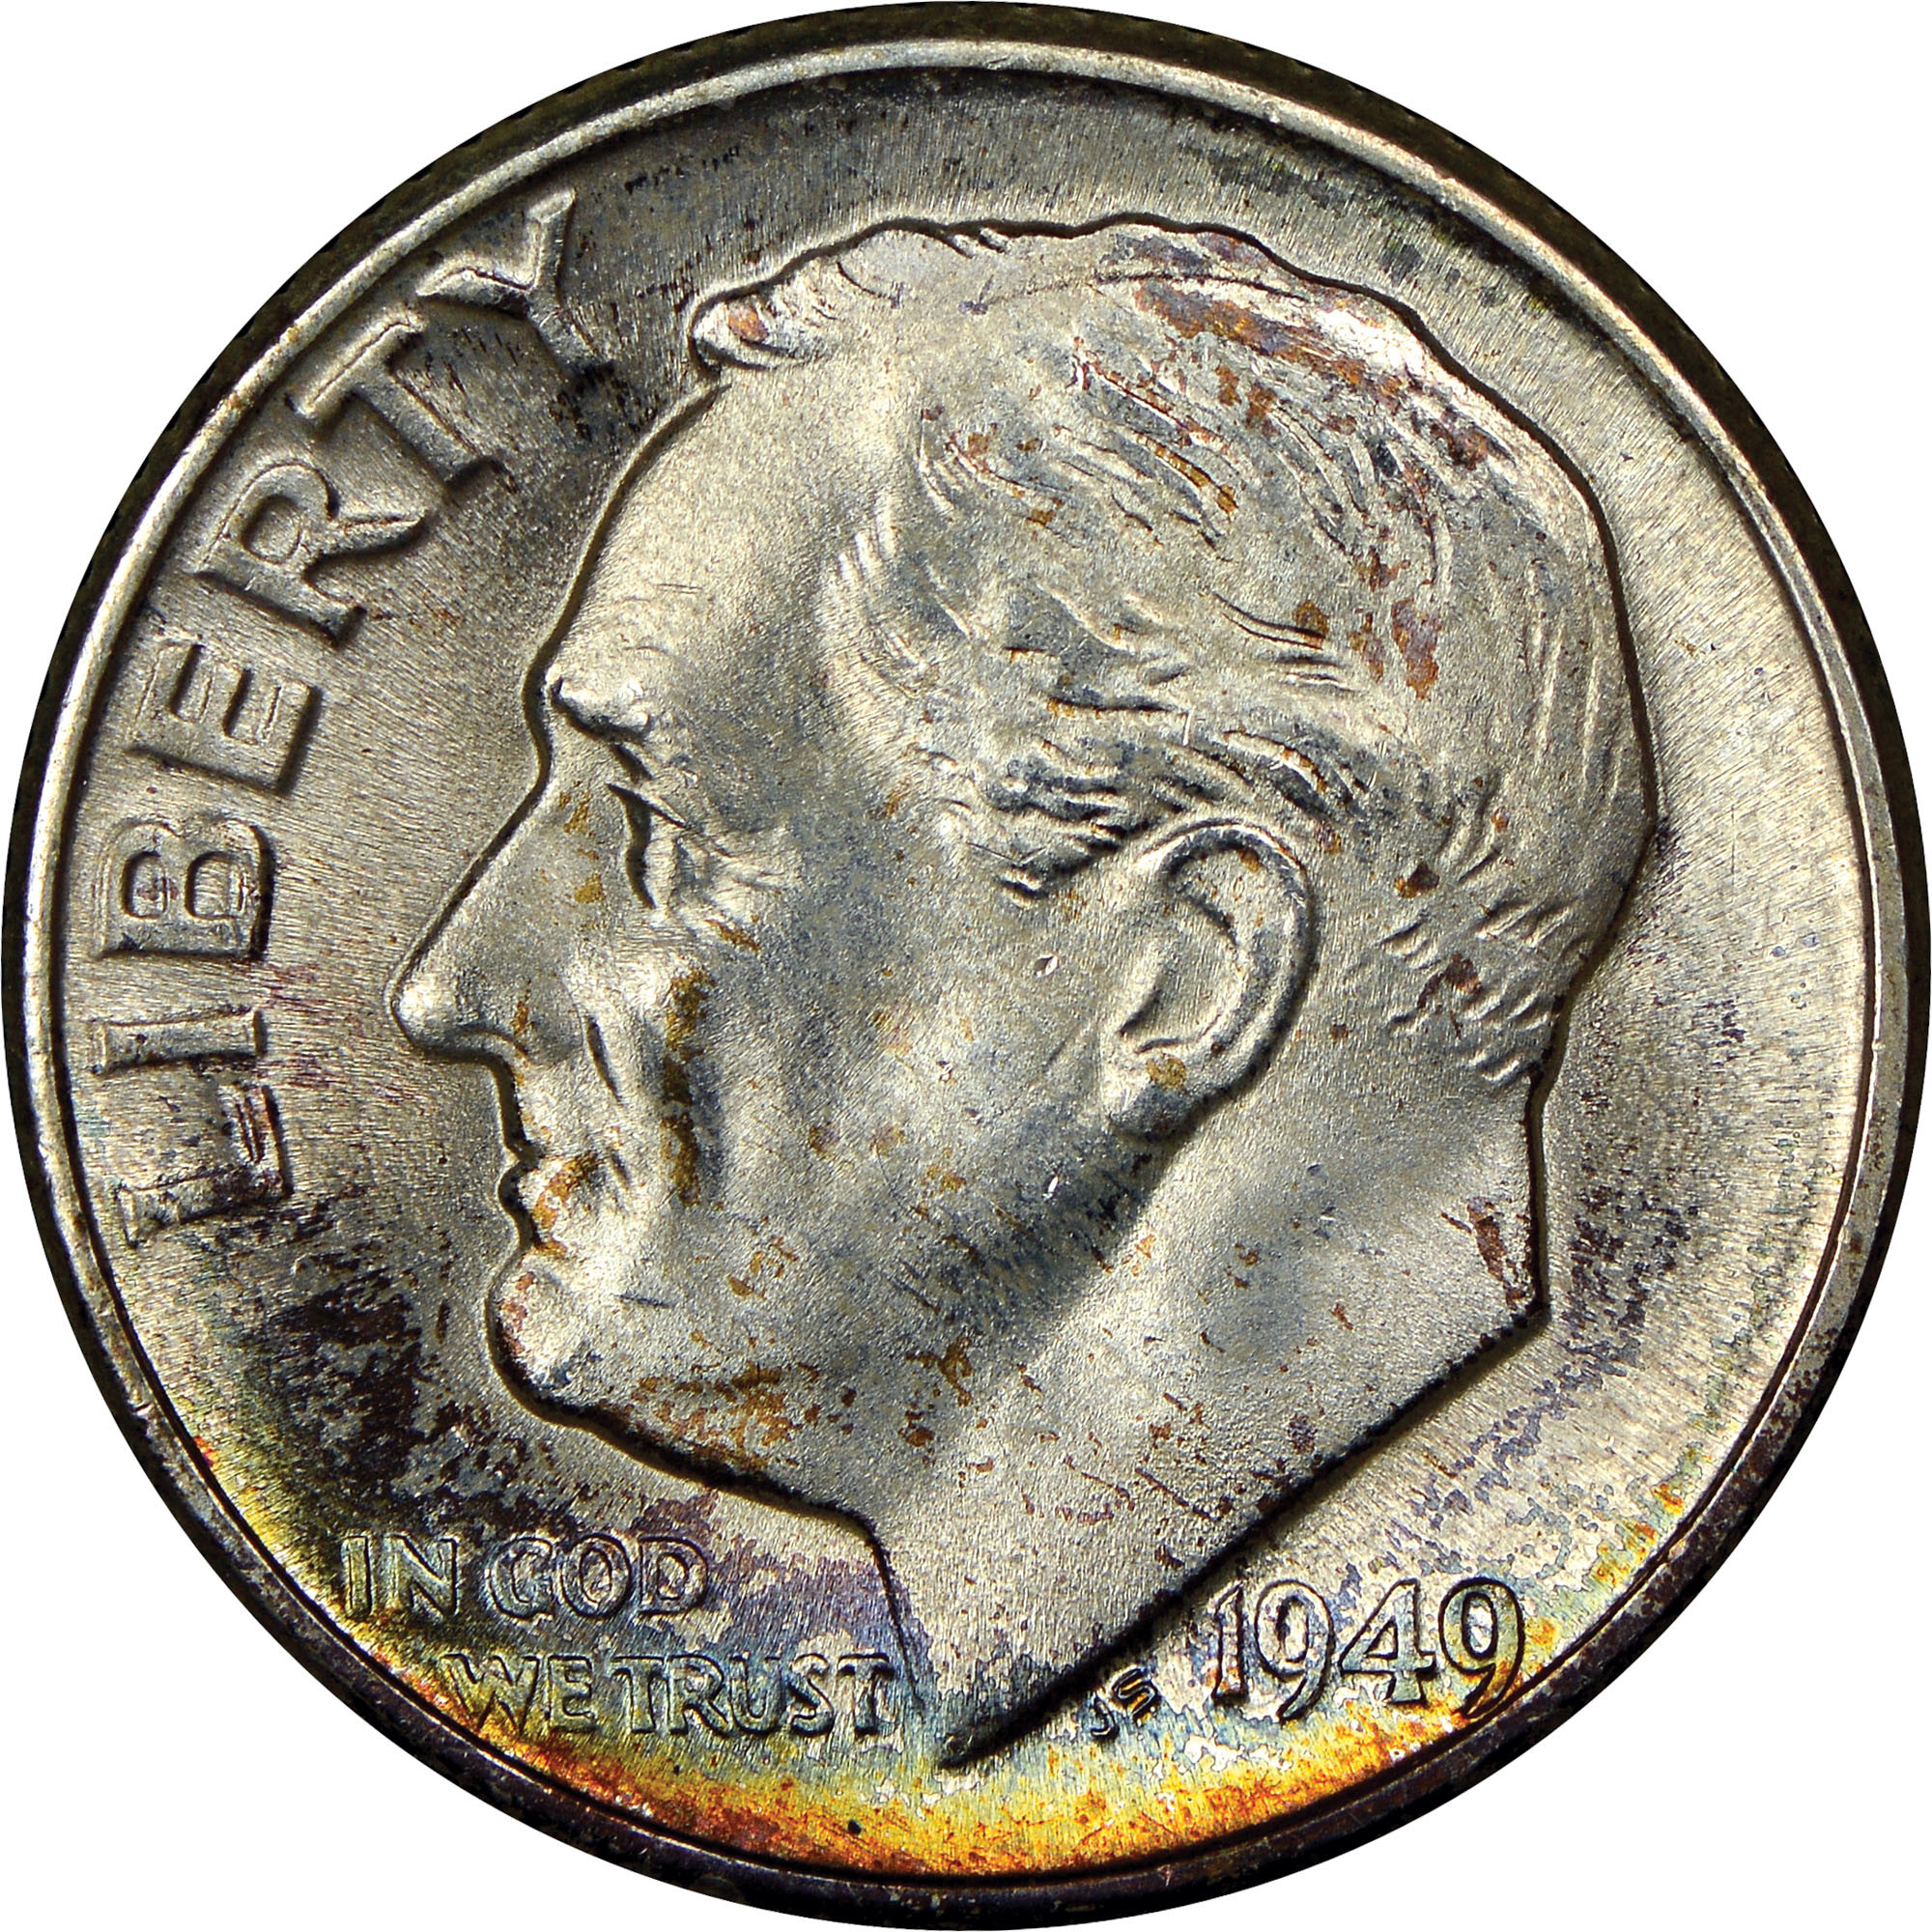 Best Of Coin Value Chart Uk Wowkeyword Price Of Silver Quarters Of Adorable 42 Ideas Price Of Silver Quarters